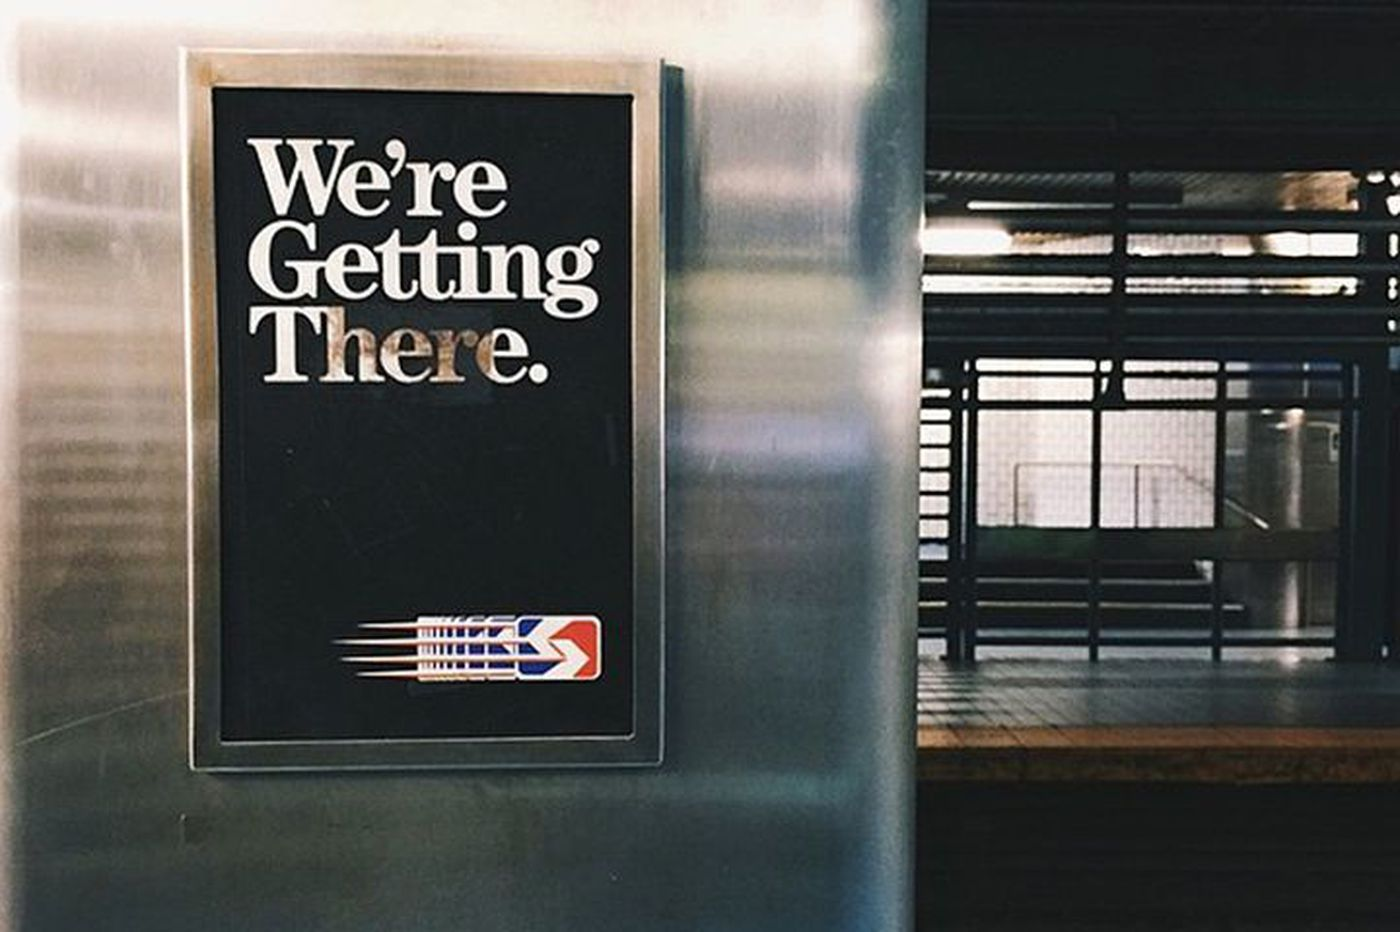 SEPTA's old 'We're Getting There' slogan has a legacy. Here's how it got there.